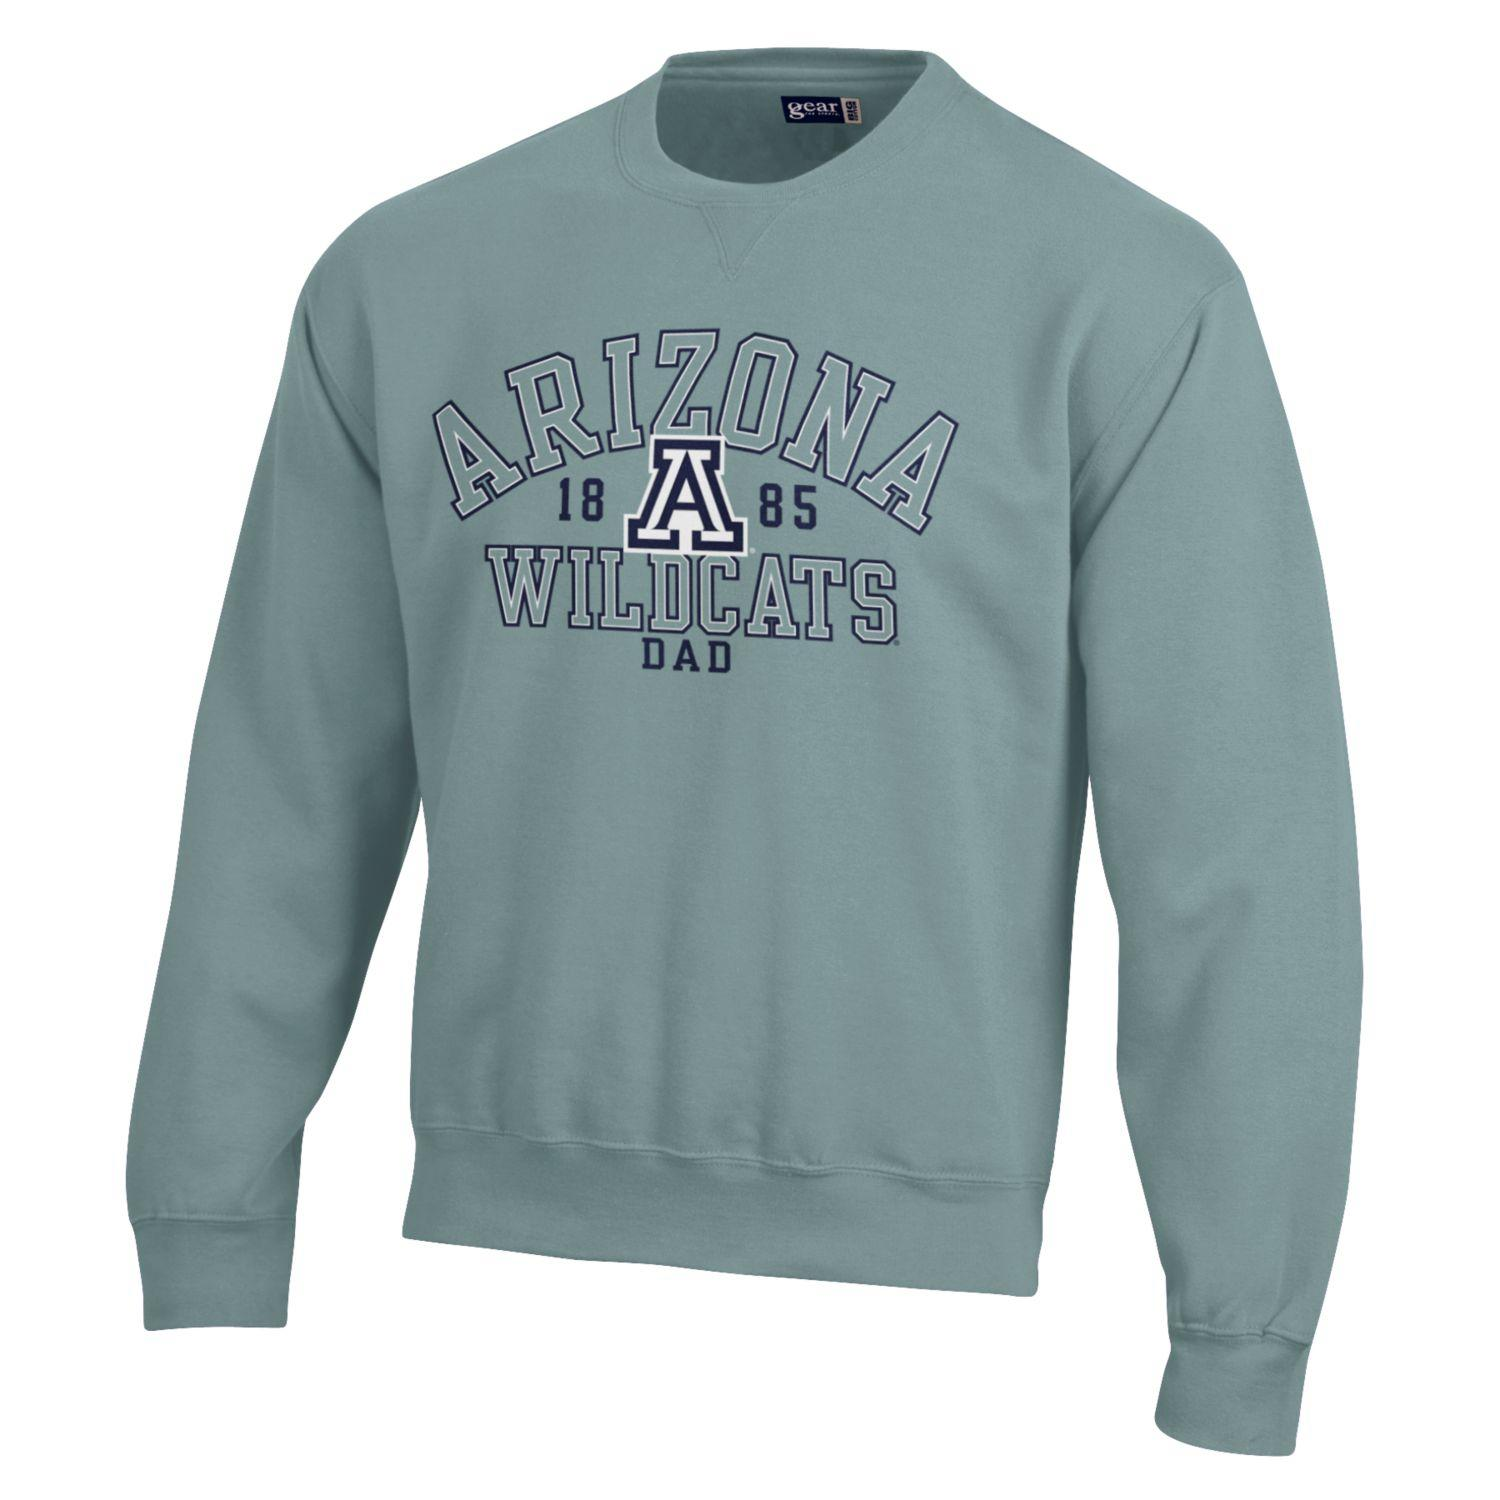 Gear For Sports: Arizona Wildcats Dad Big Cotton Crew